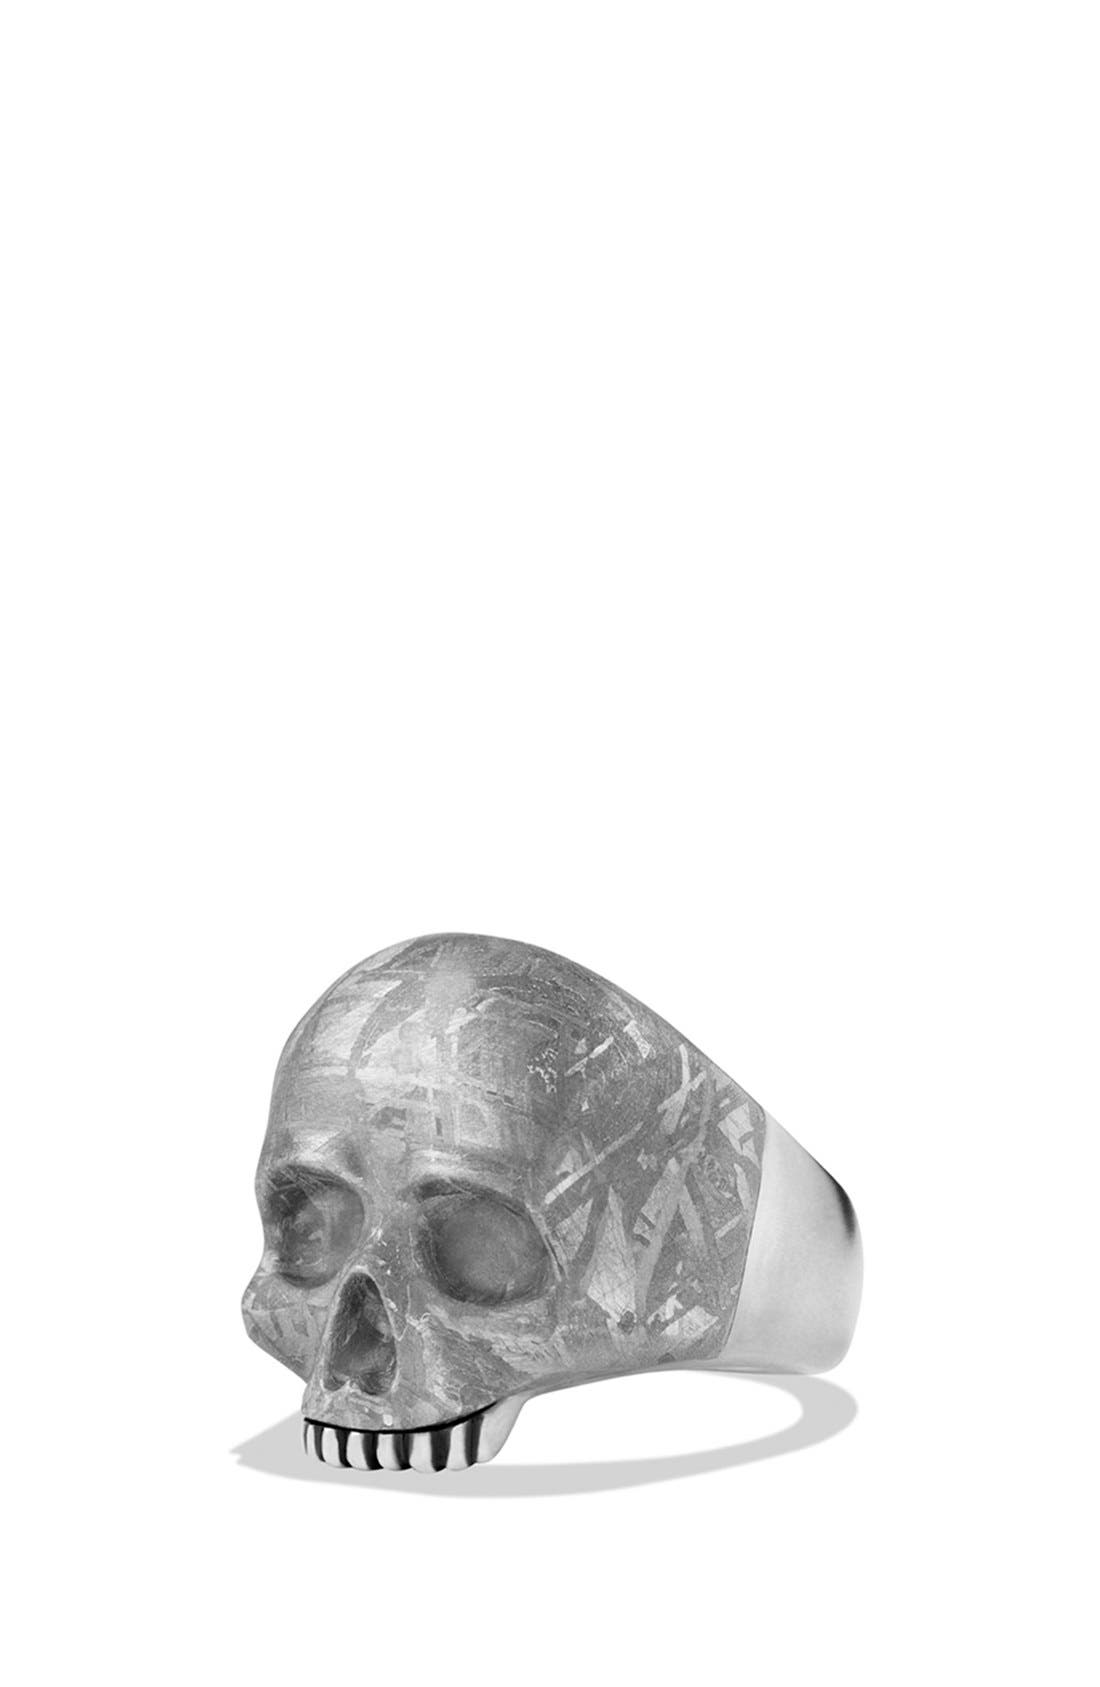 'Skull' Ring with Carved Meteorite,                         Main,                         color, METEORITE